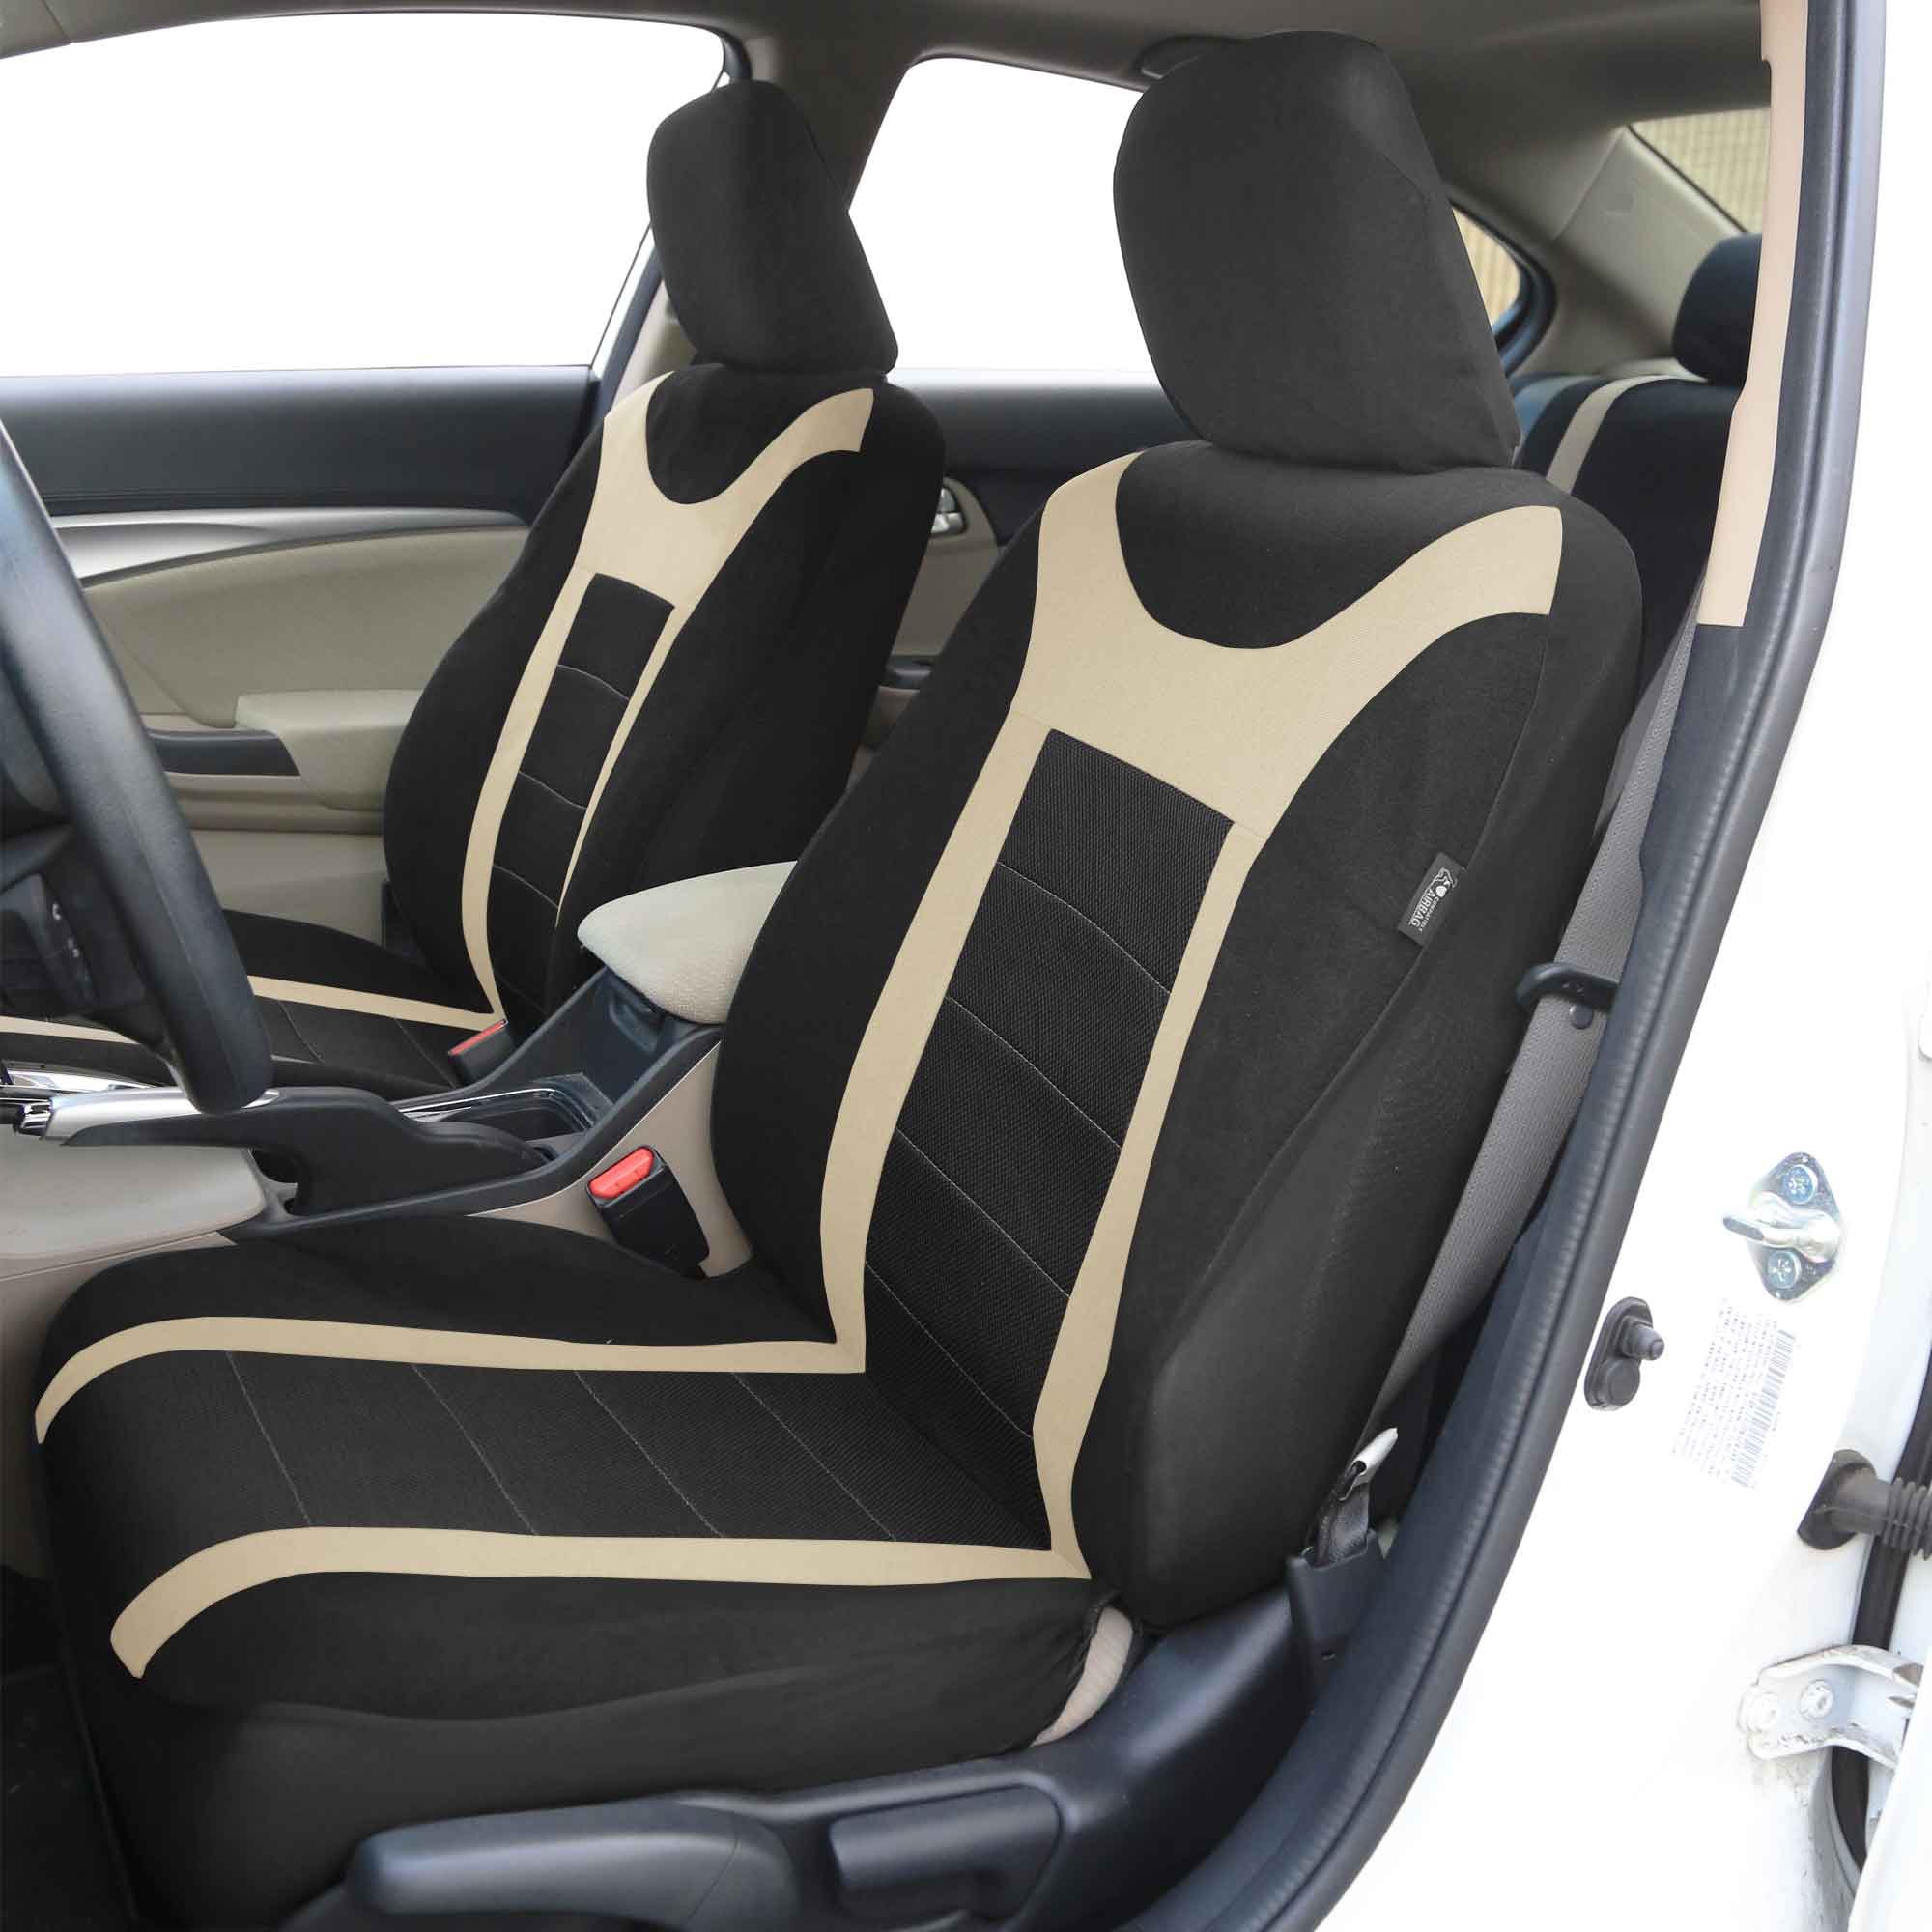 Marvelous photograph of Sports Car Seat Covers Complete Set Air bag Safe & Split Bench Ready  with #816F4A color and 2000x2000 pixels